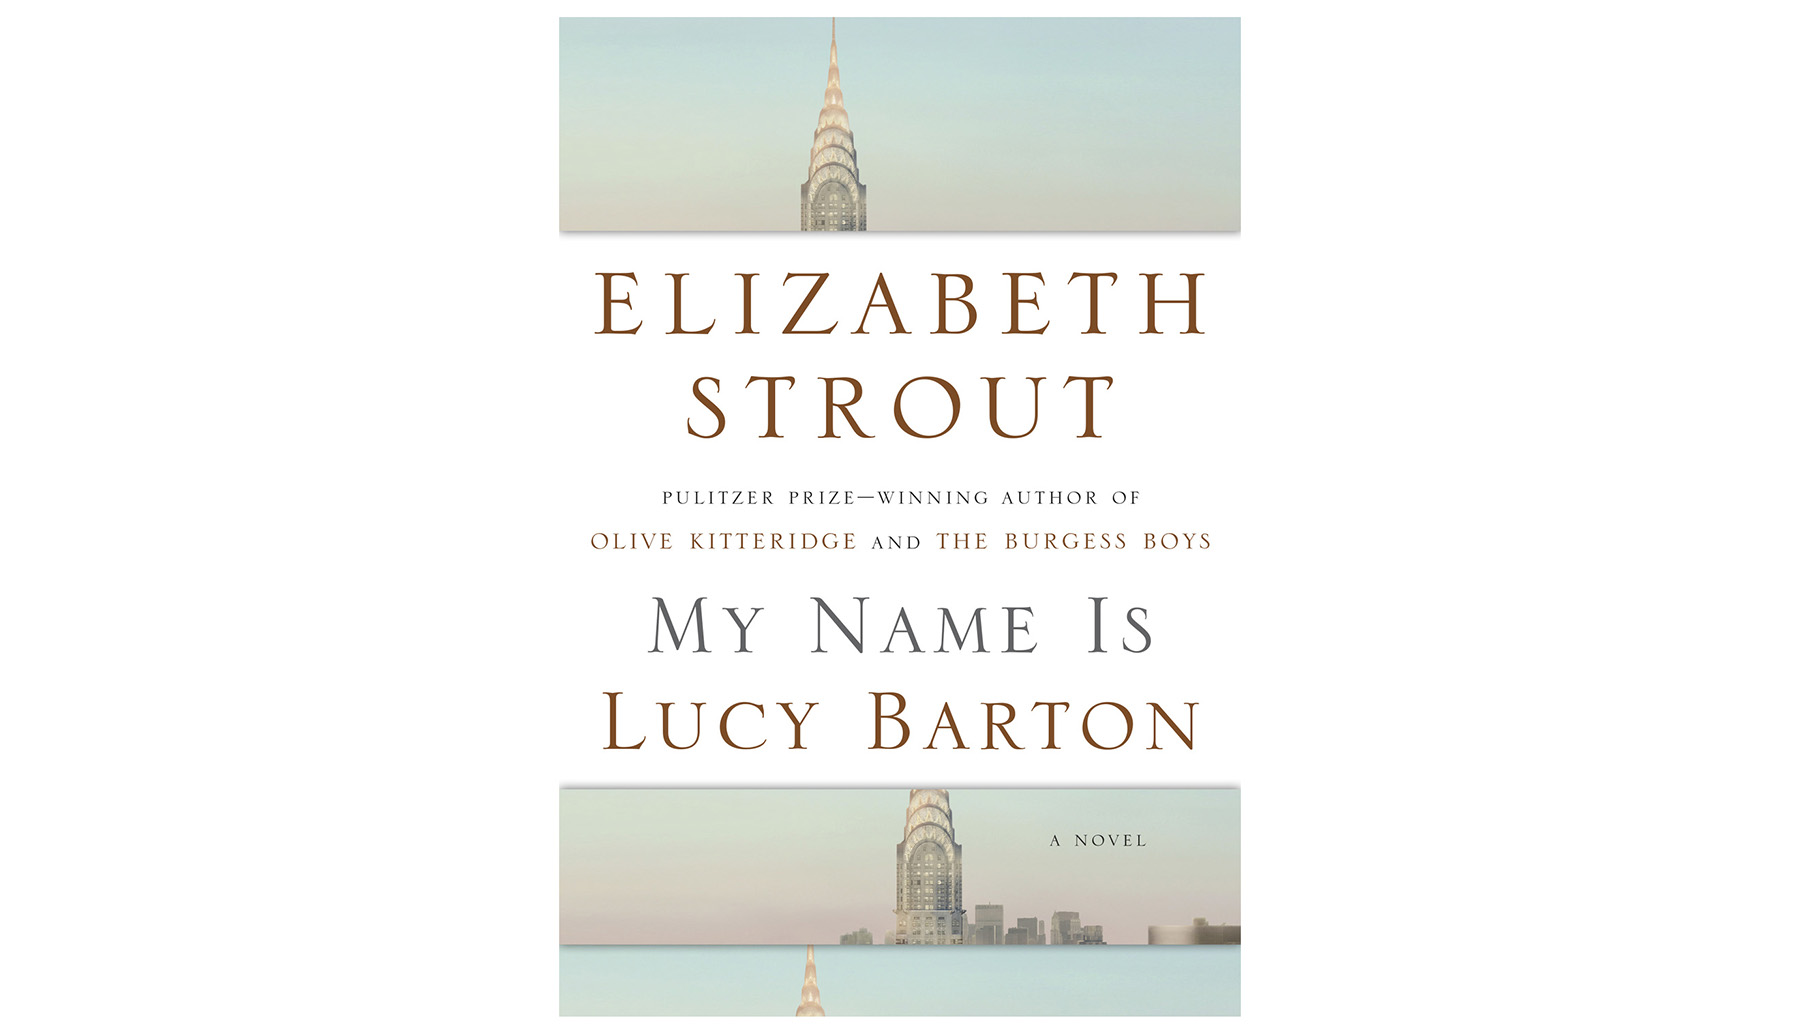 My Name Is Lucy Barton, by Elizabeth Strout